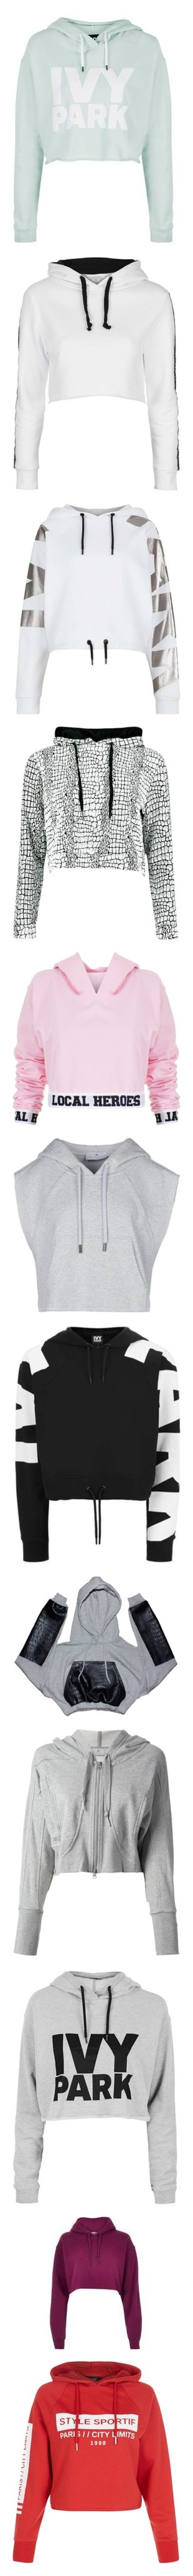 """cropped hoodies"" by lulucosby ❤ liked on Polyvore featuring tops, hoodies, sweaters, crop top, sweats, mint, white crop tops, sport hoodie, hooded sweatshirt and cropped hooded sweatshirt"